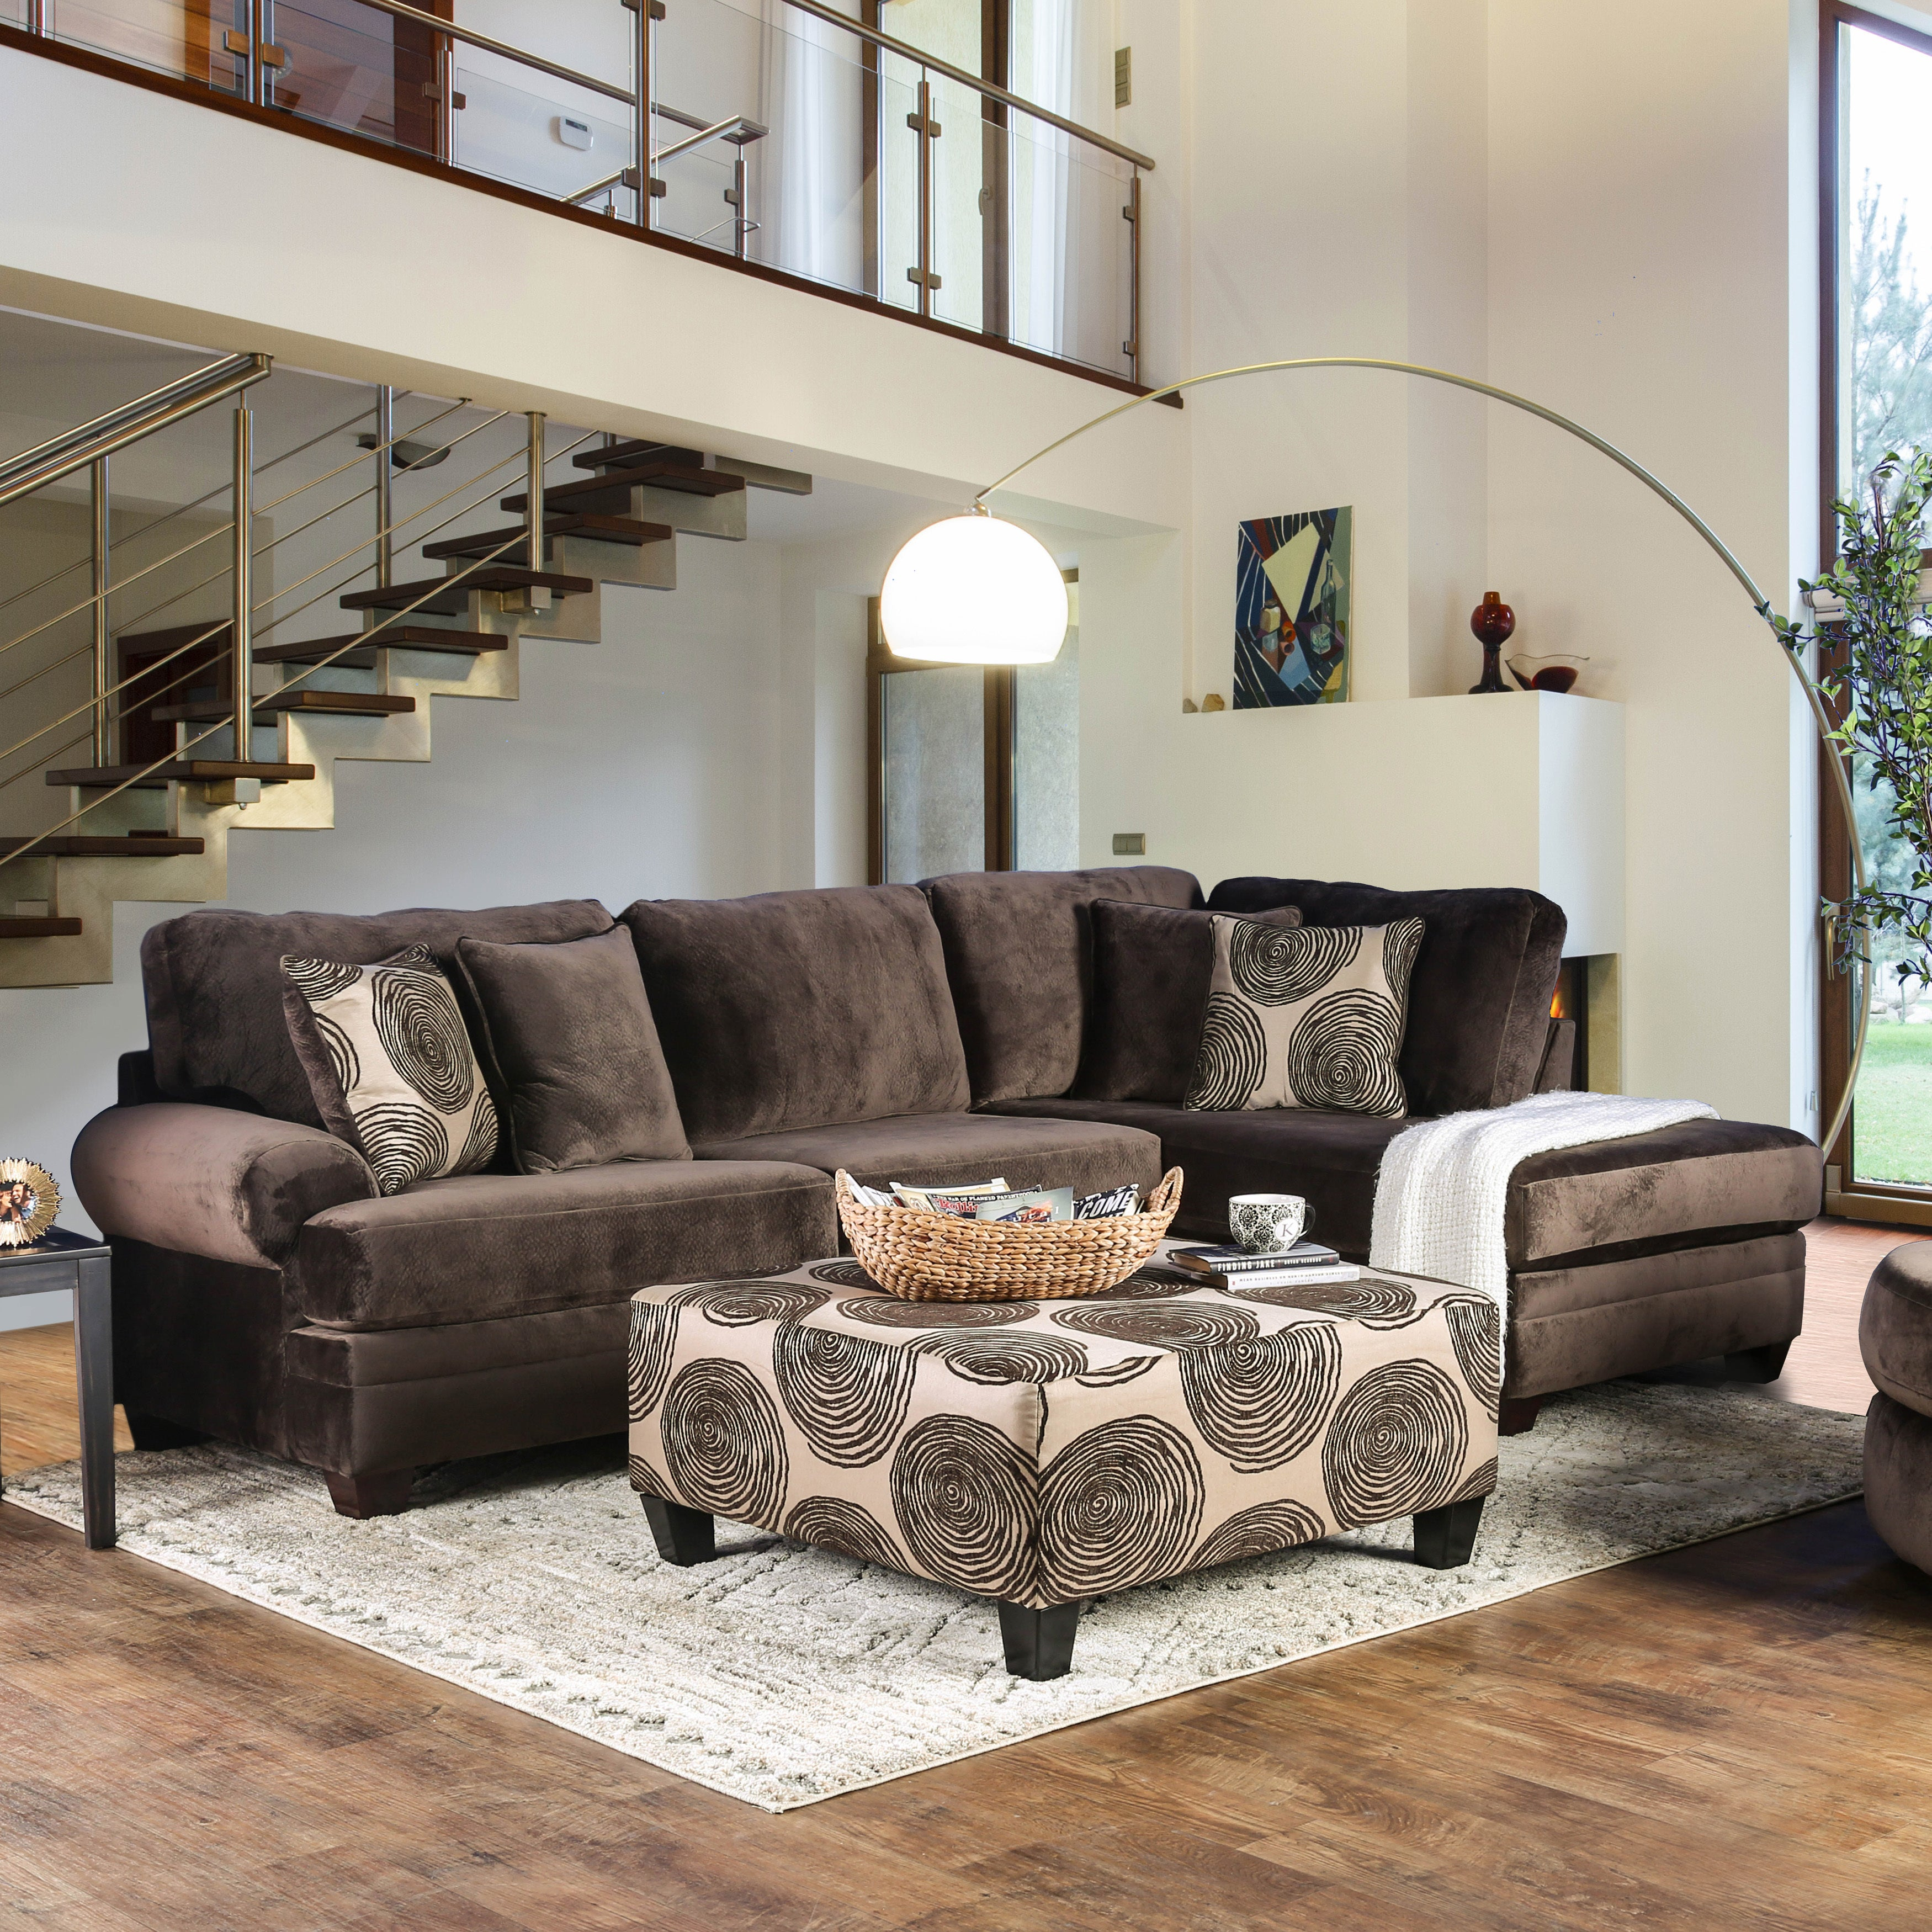 Furniture of America Cassavetes Contemporary Microfiber Sectional Sofa